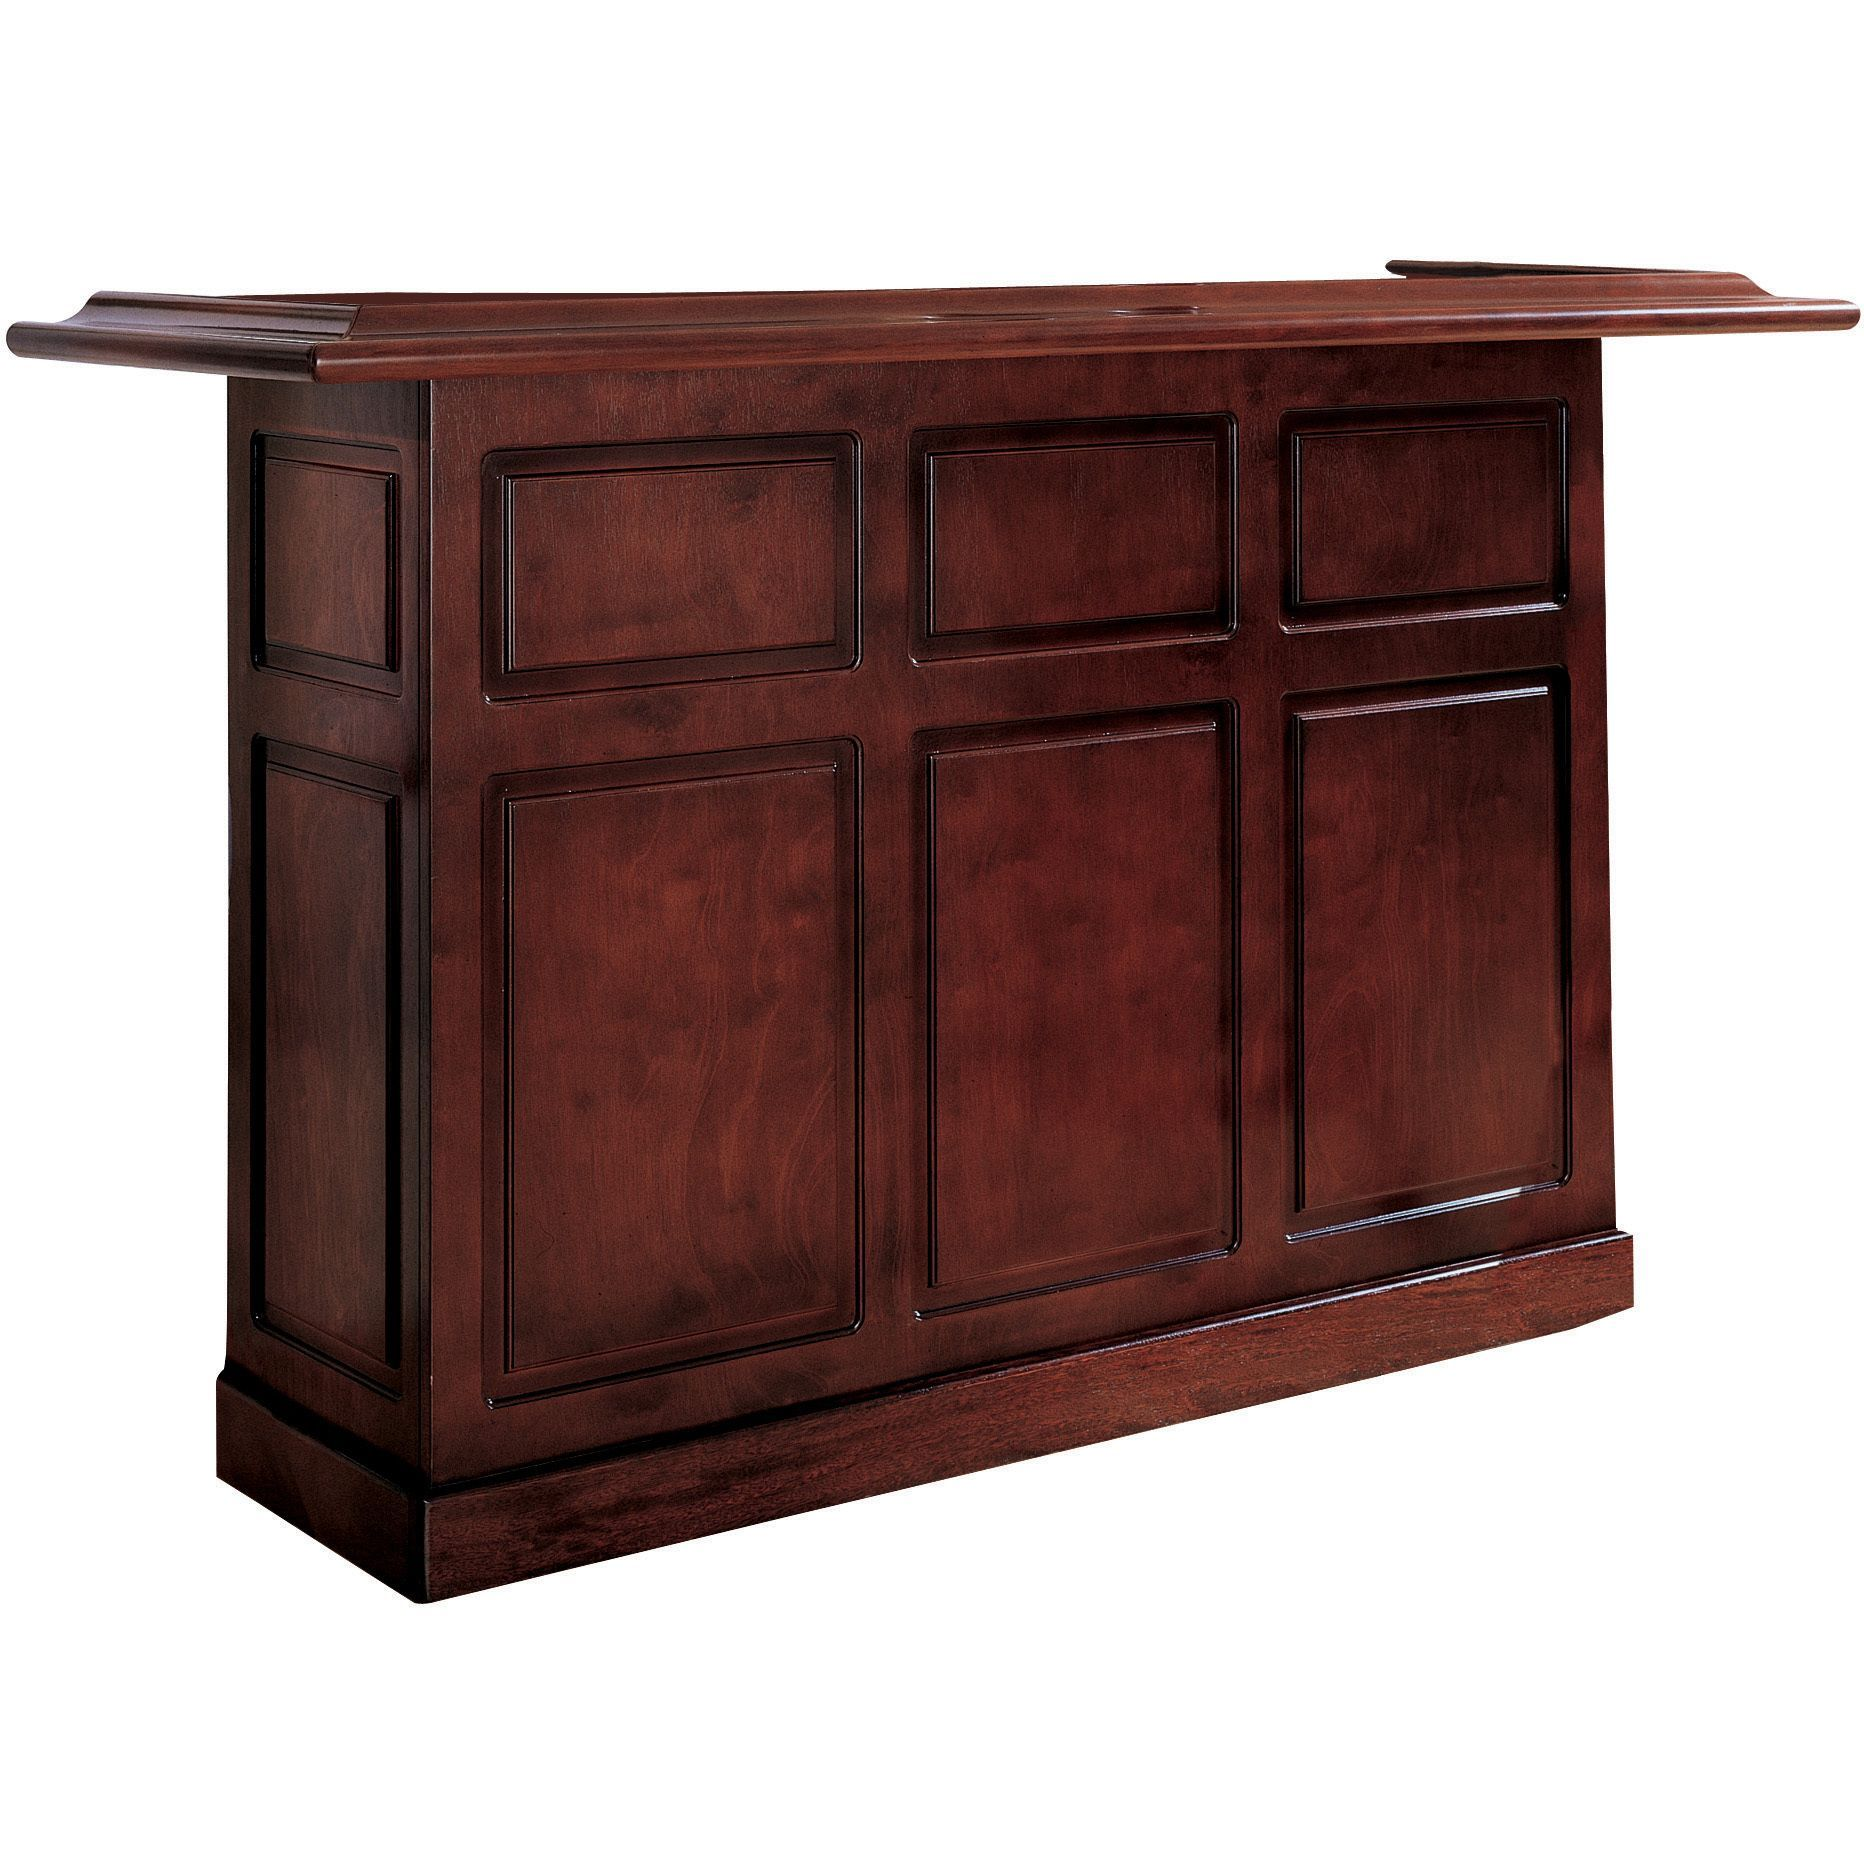 Overstock Com Online Shopping Bedding Furniture Electronics Jewelry Clothing More Lexington Home Bars For Home Wine Storage